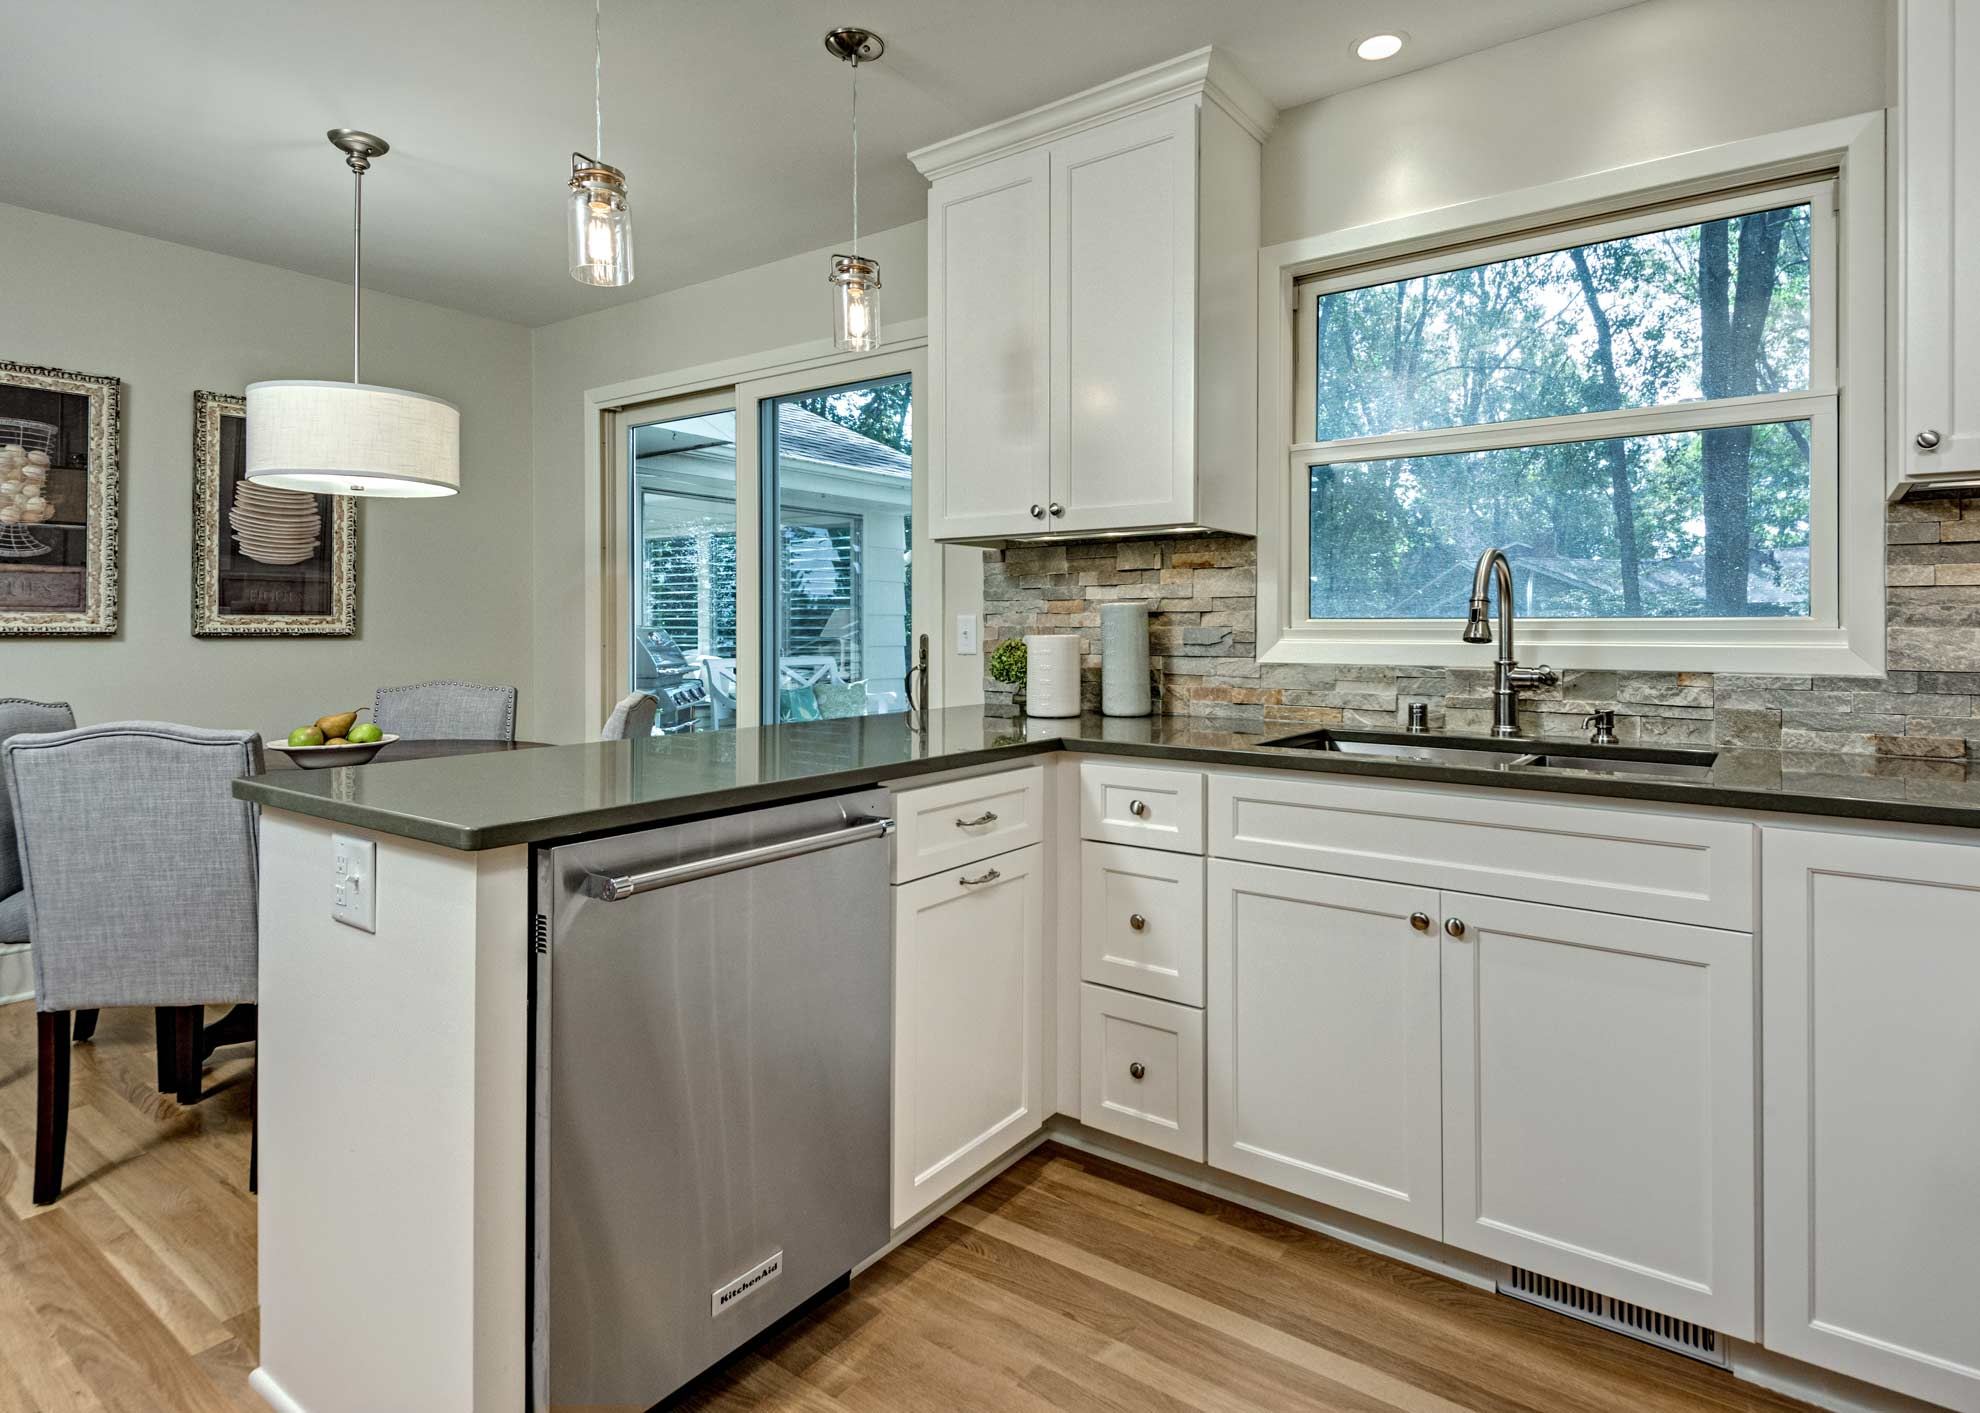 Kitchens | Knight Construction Design Inc.